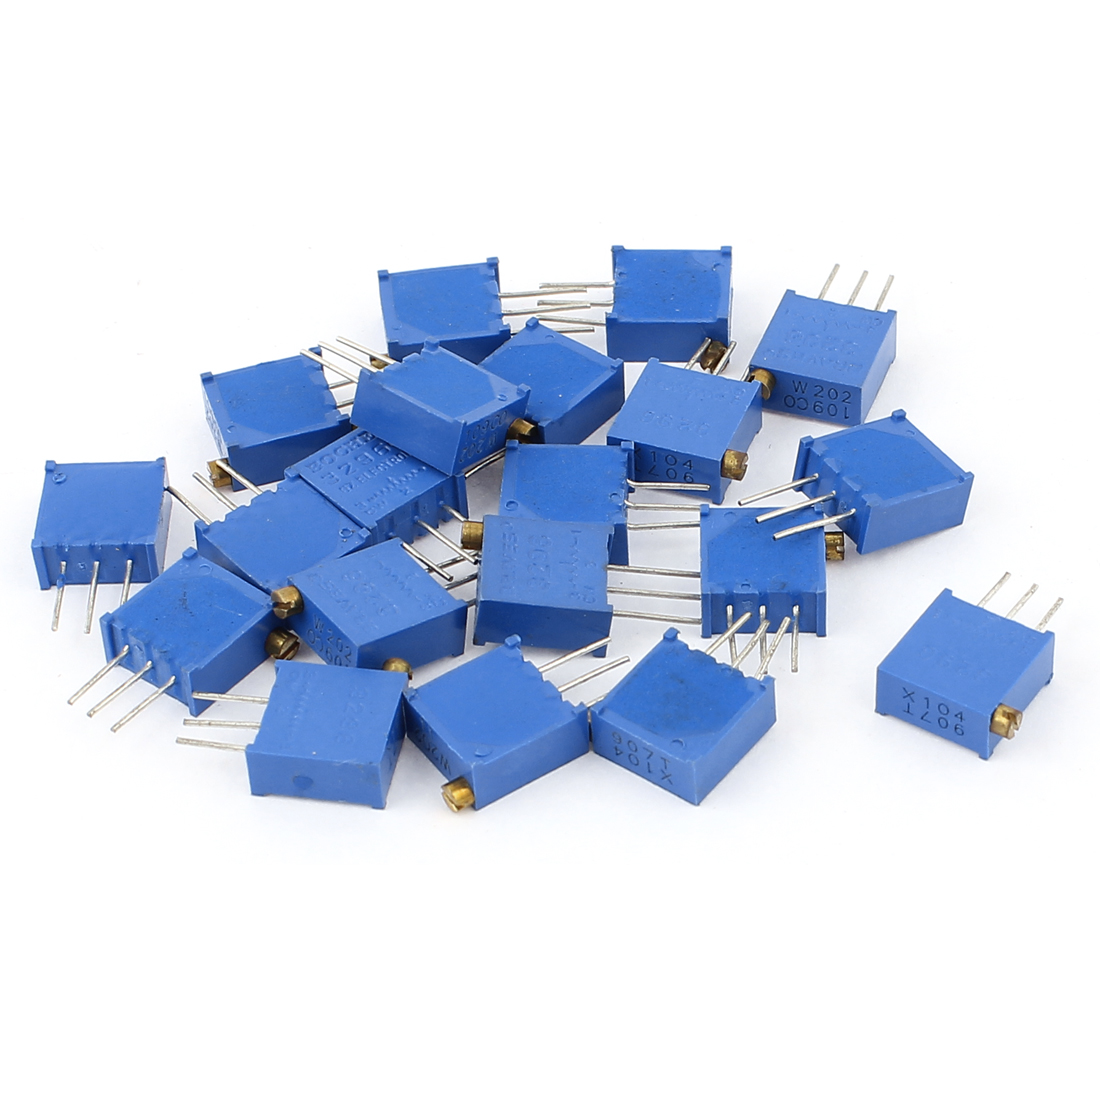 20Pcs 3296W-202 3296W-104 Resistor Trim Pot Potentiometer Trimmer